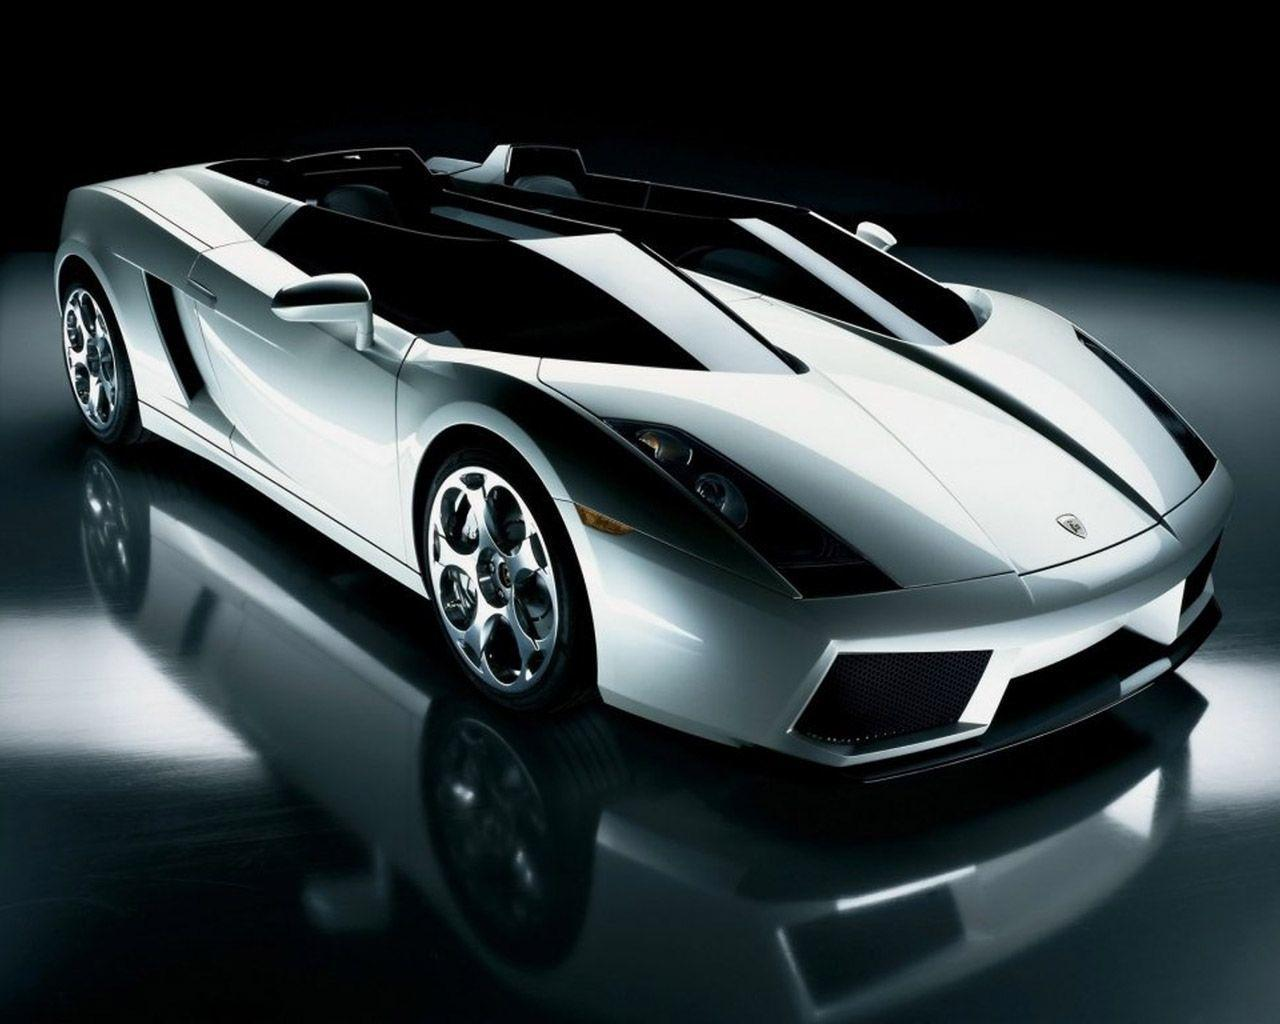 Cars Wallpapers & Images | Free Art Wallpapers